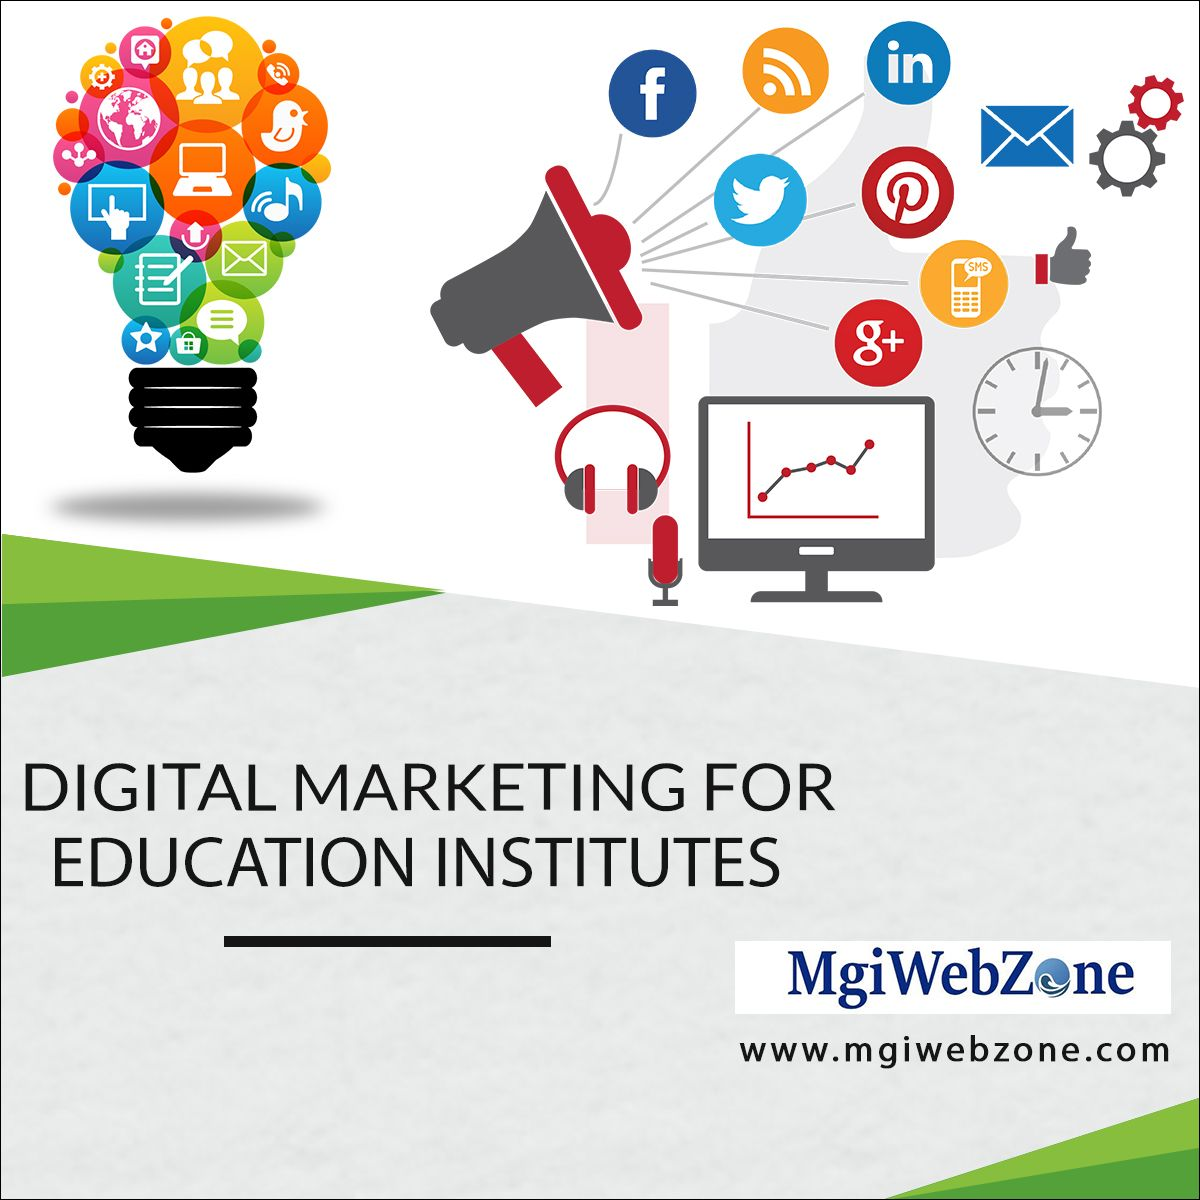 OnlineMarketing for educational institutions - #MgiWebzone